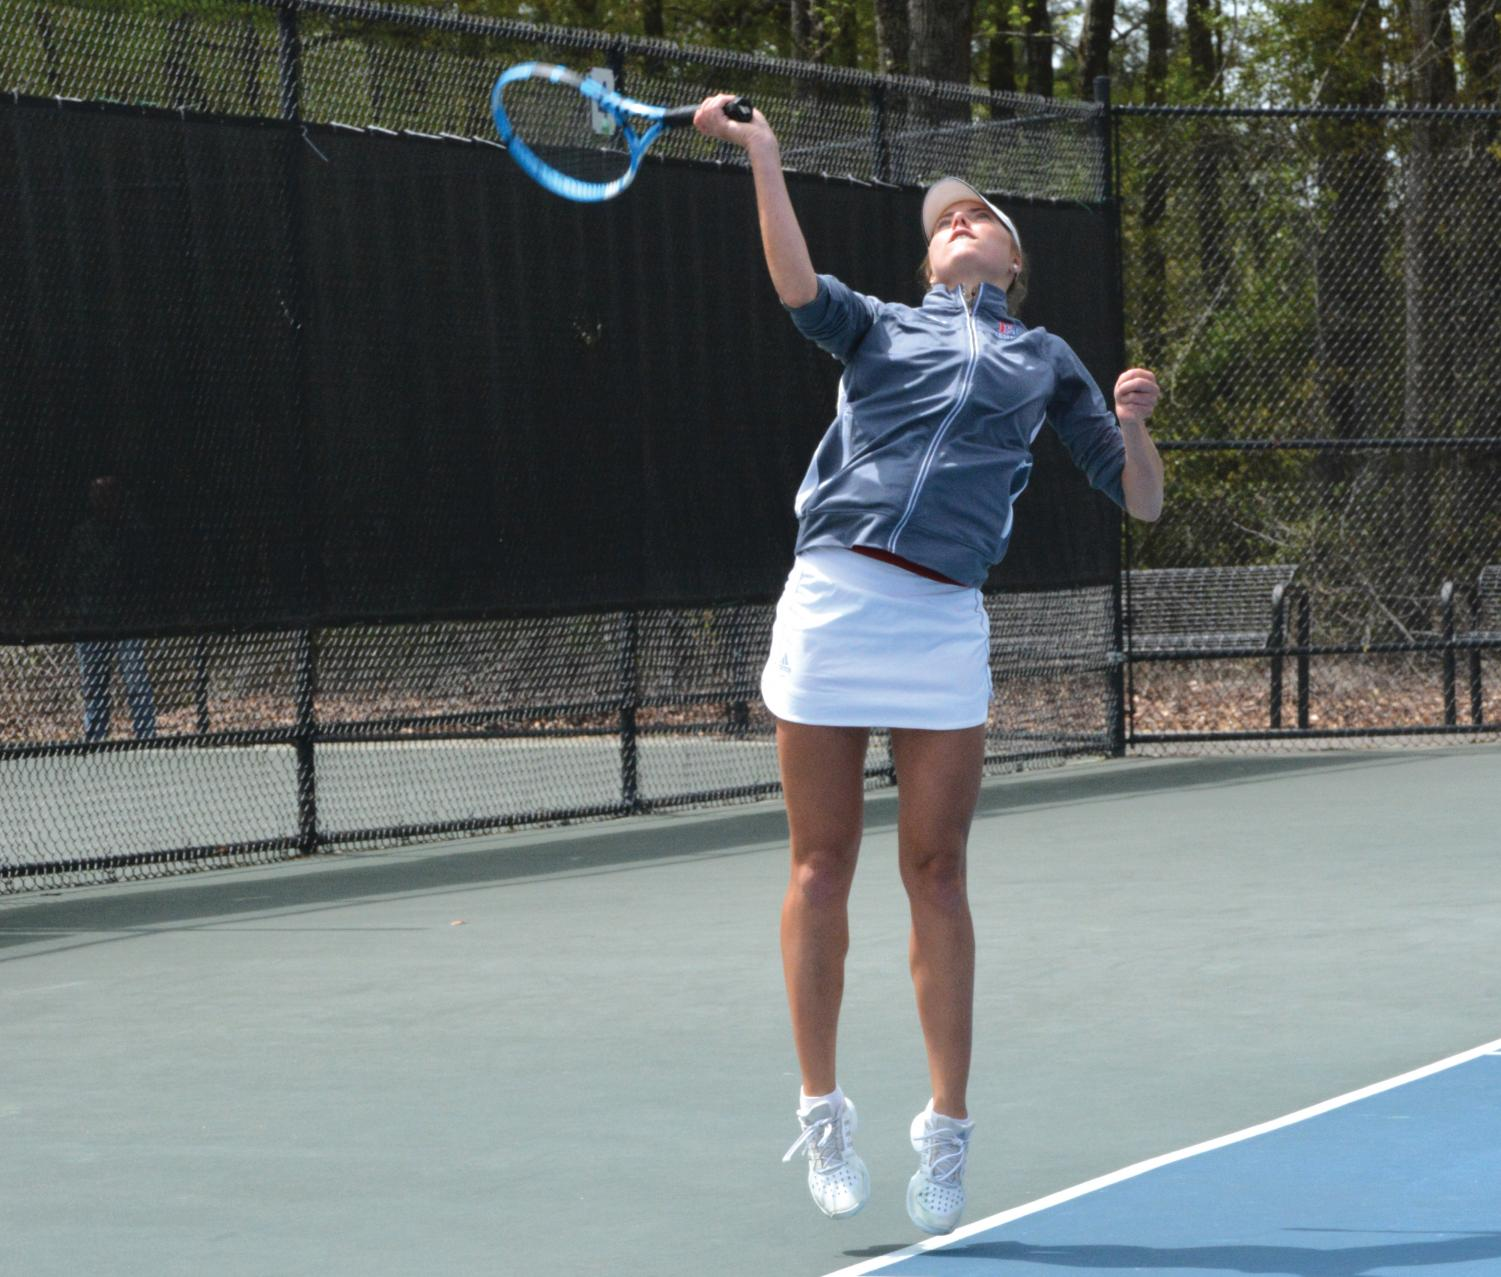 Senior Sofia Henning serves the tennis match during her last singles match as a lady Patriot.